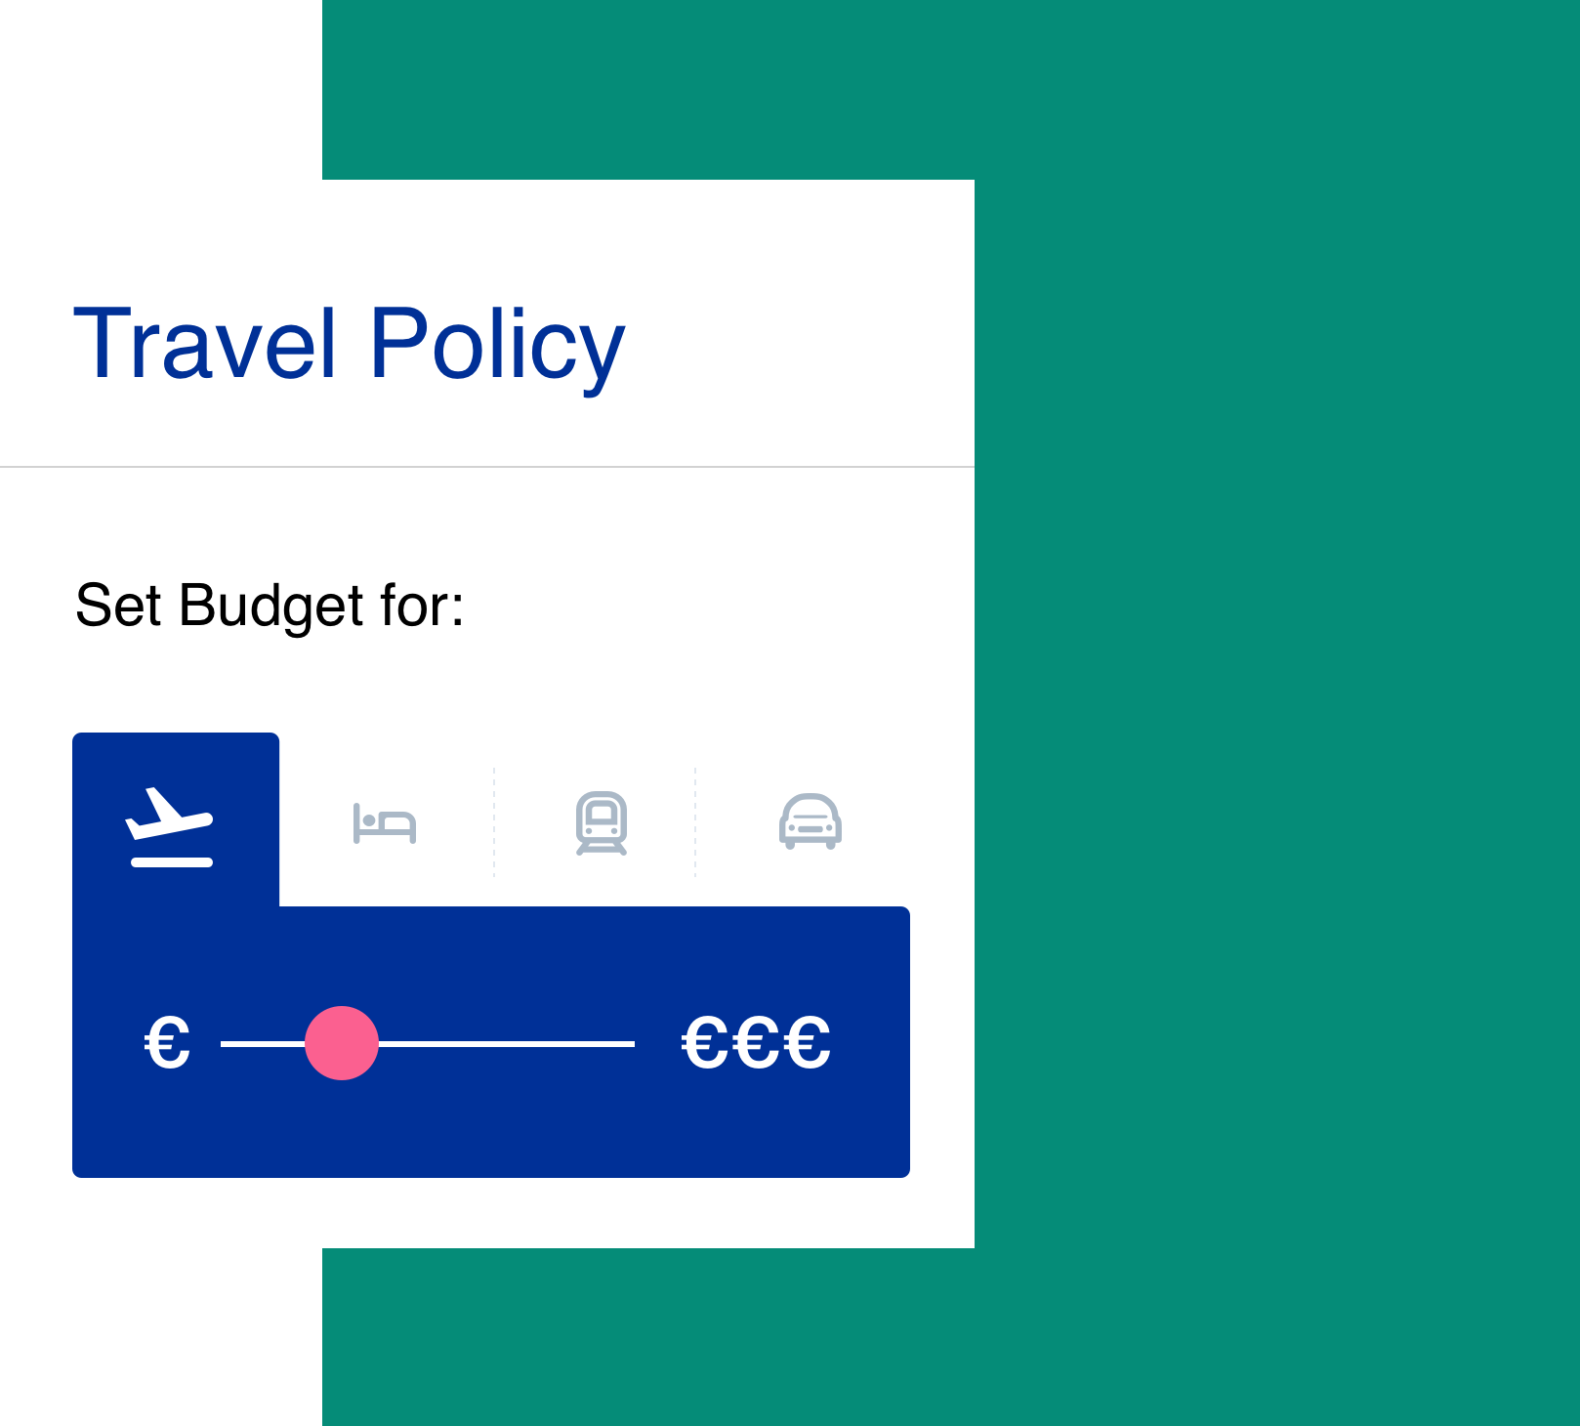 Travel policy budget